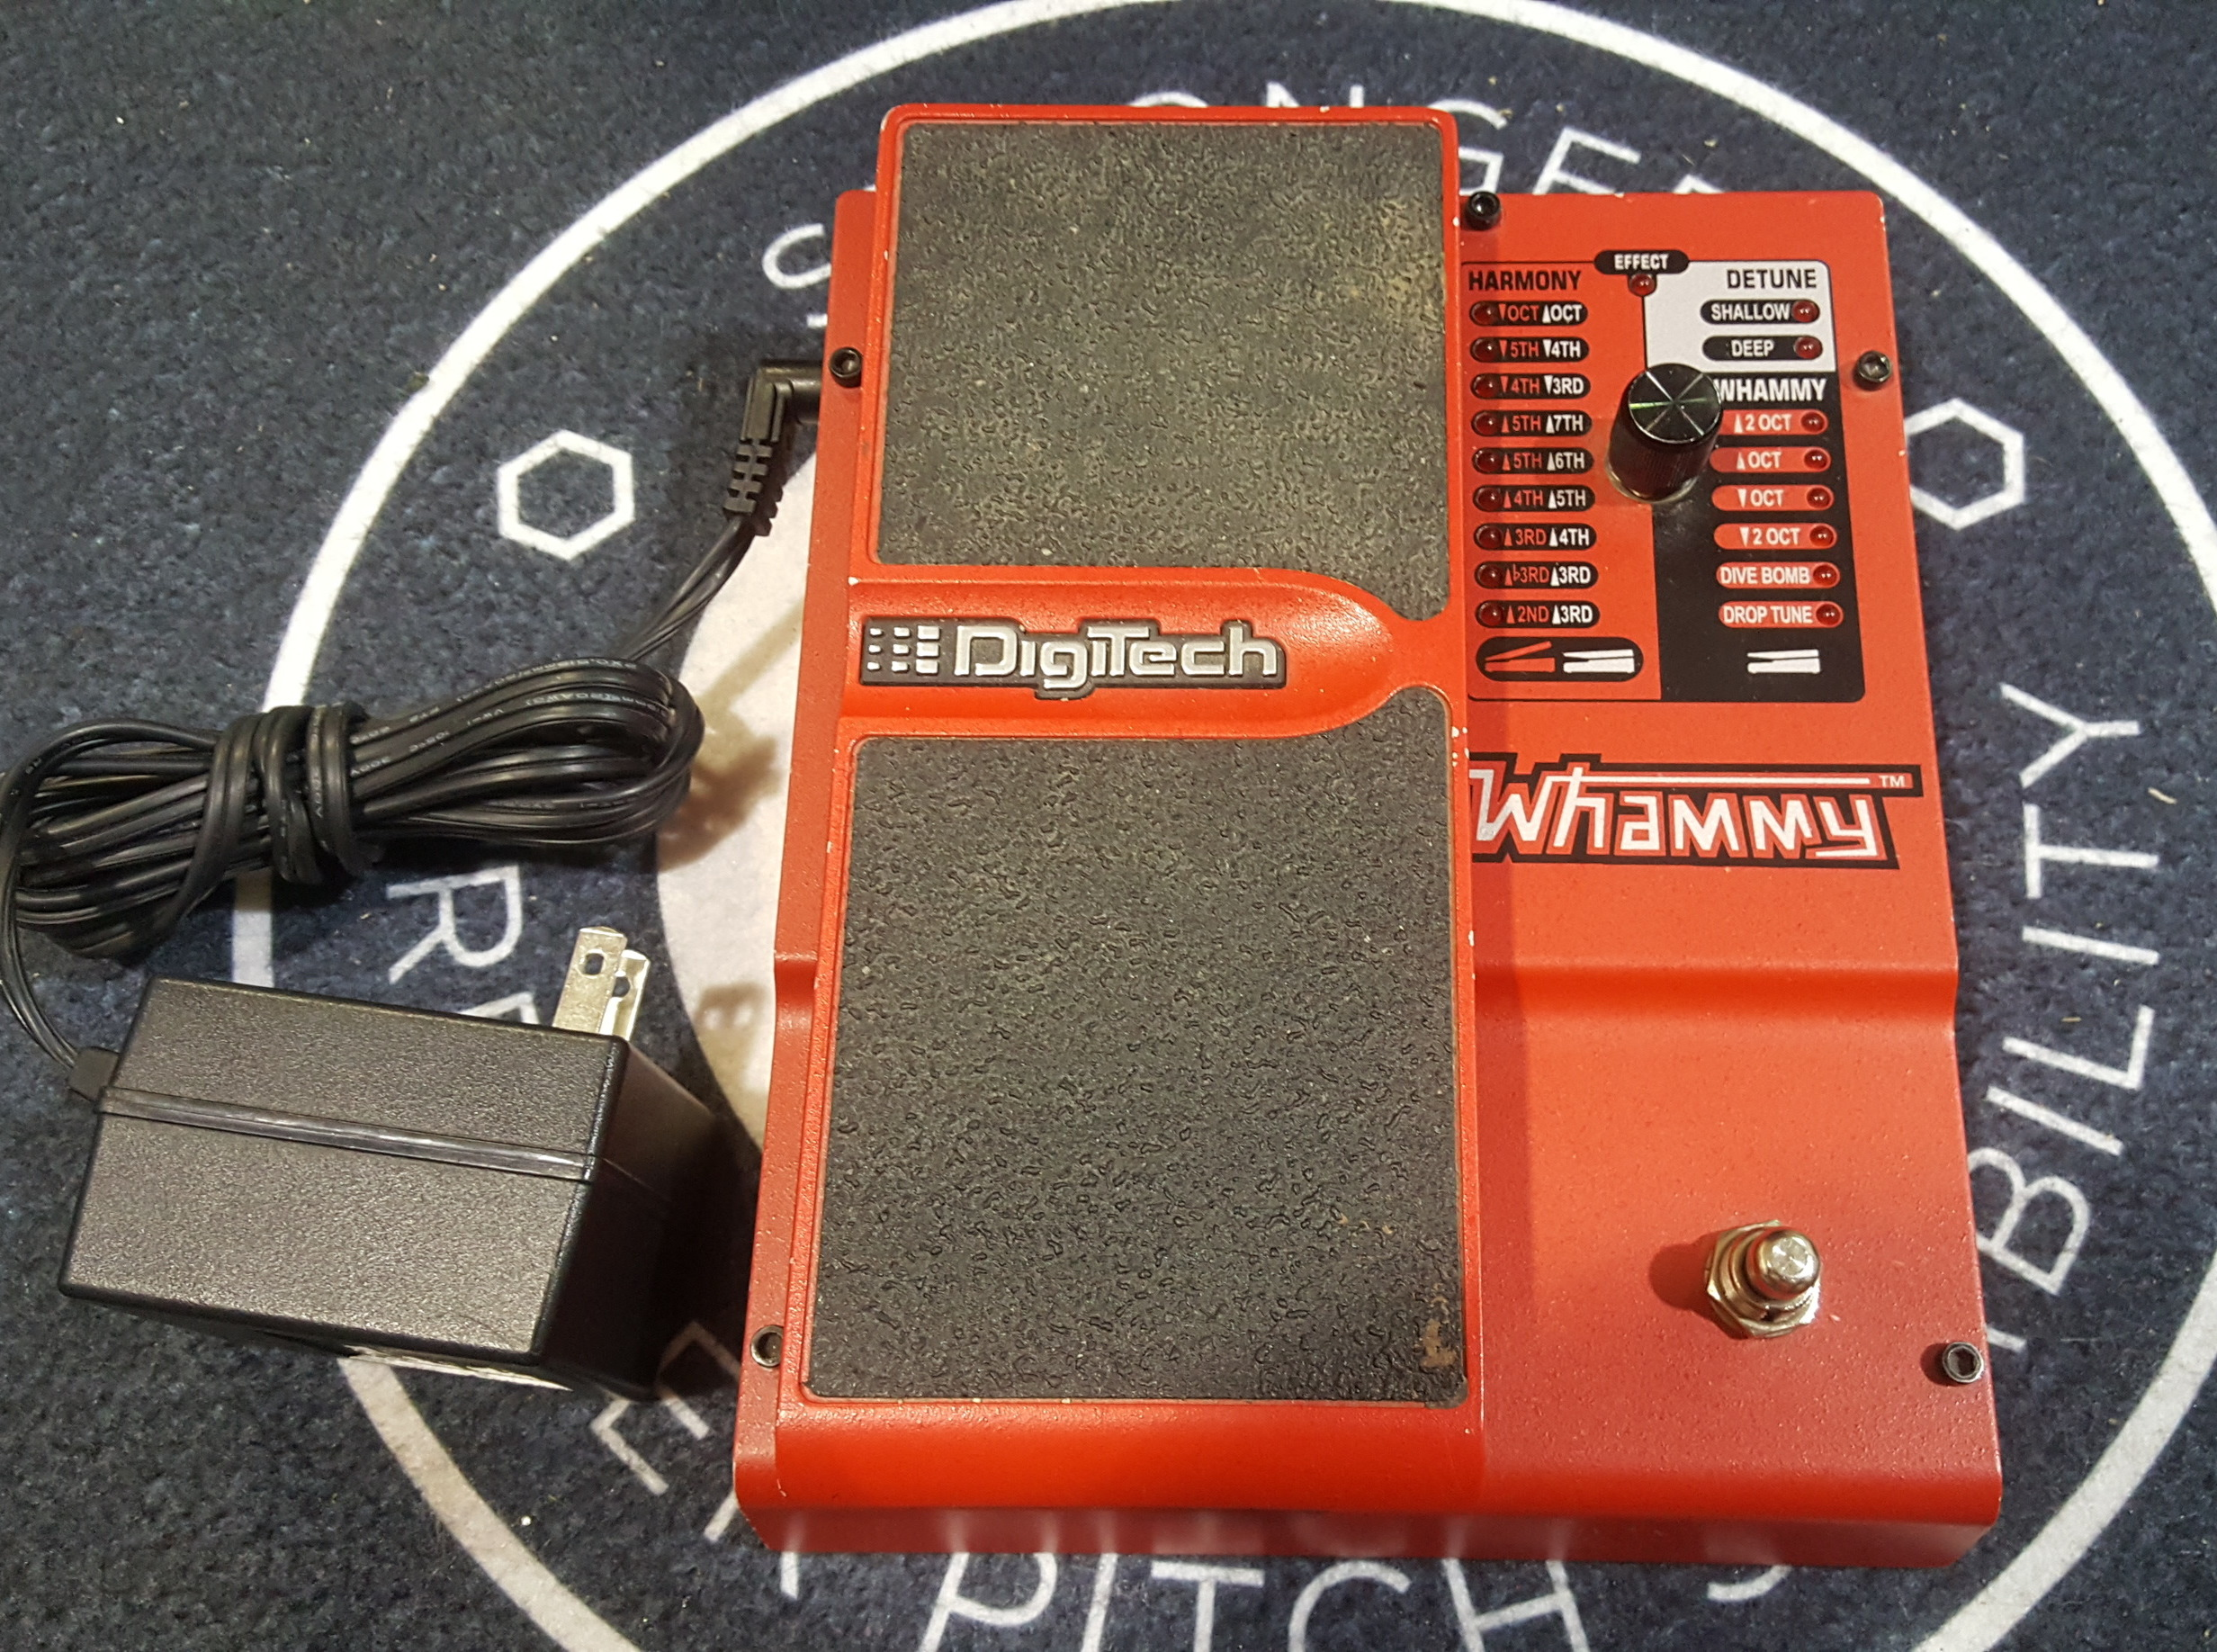 DIGITECH WHAMMY Pitch-Shifter Guitar Effects FX Pedal with Power Supply!!